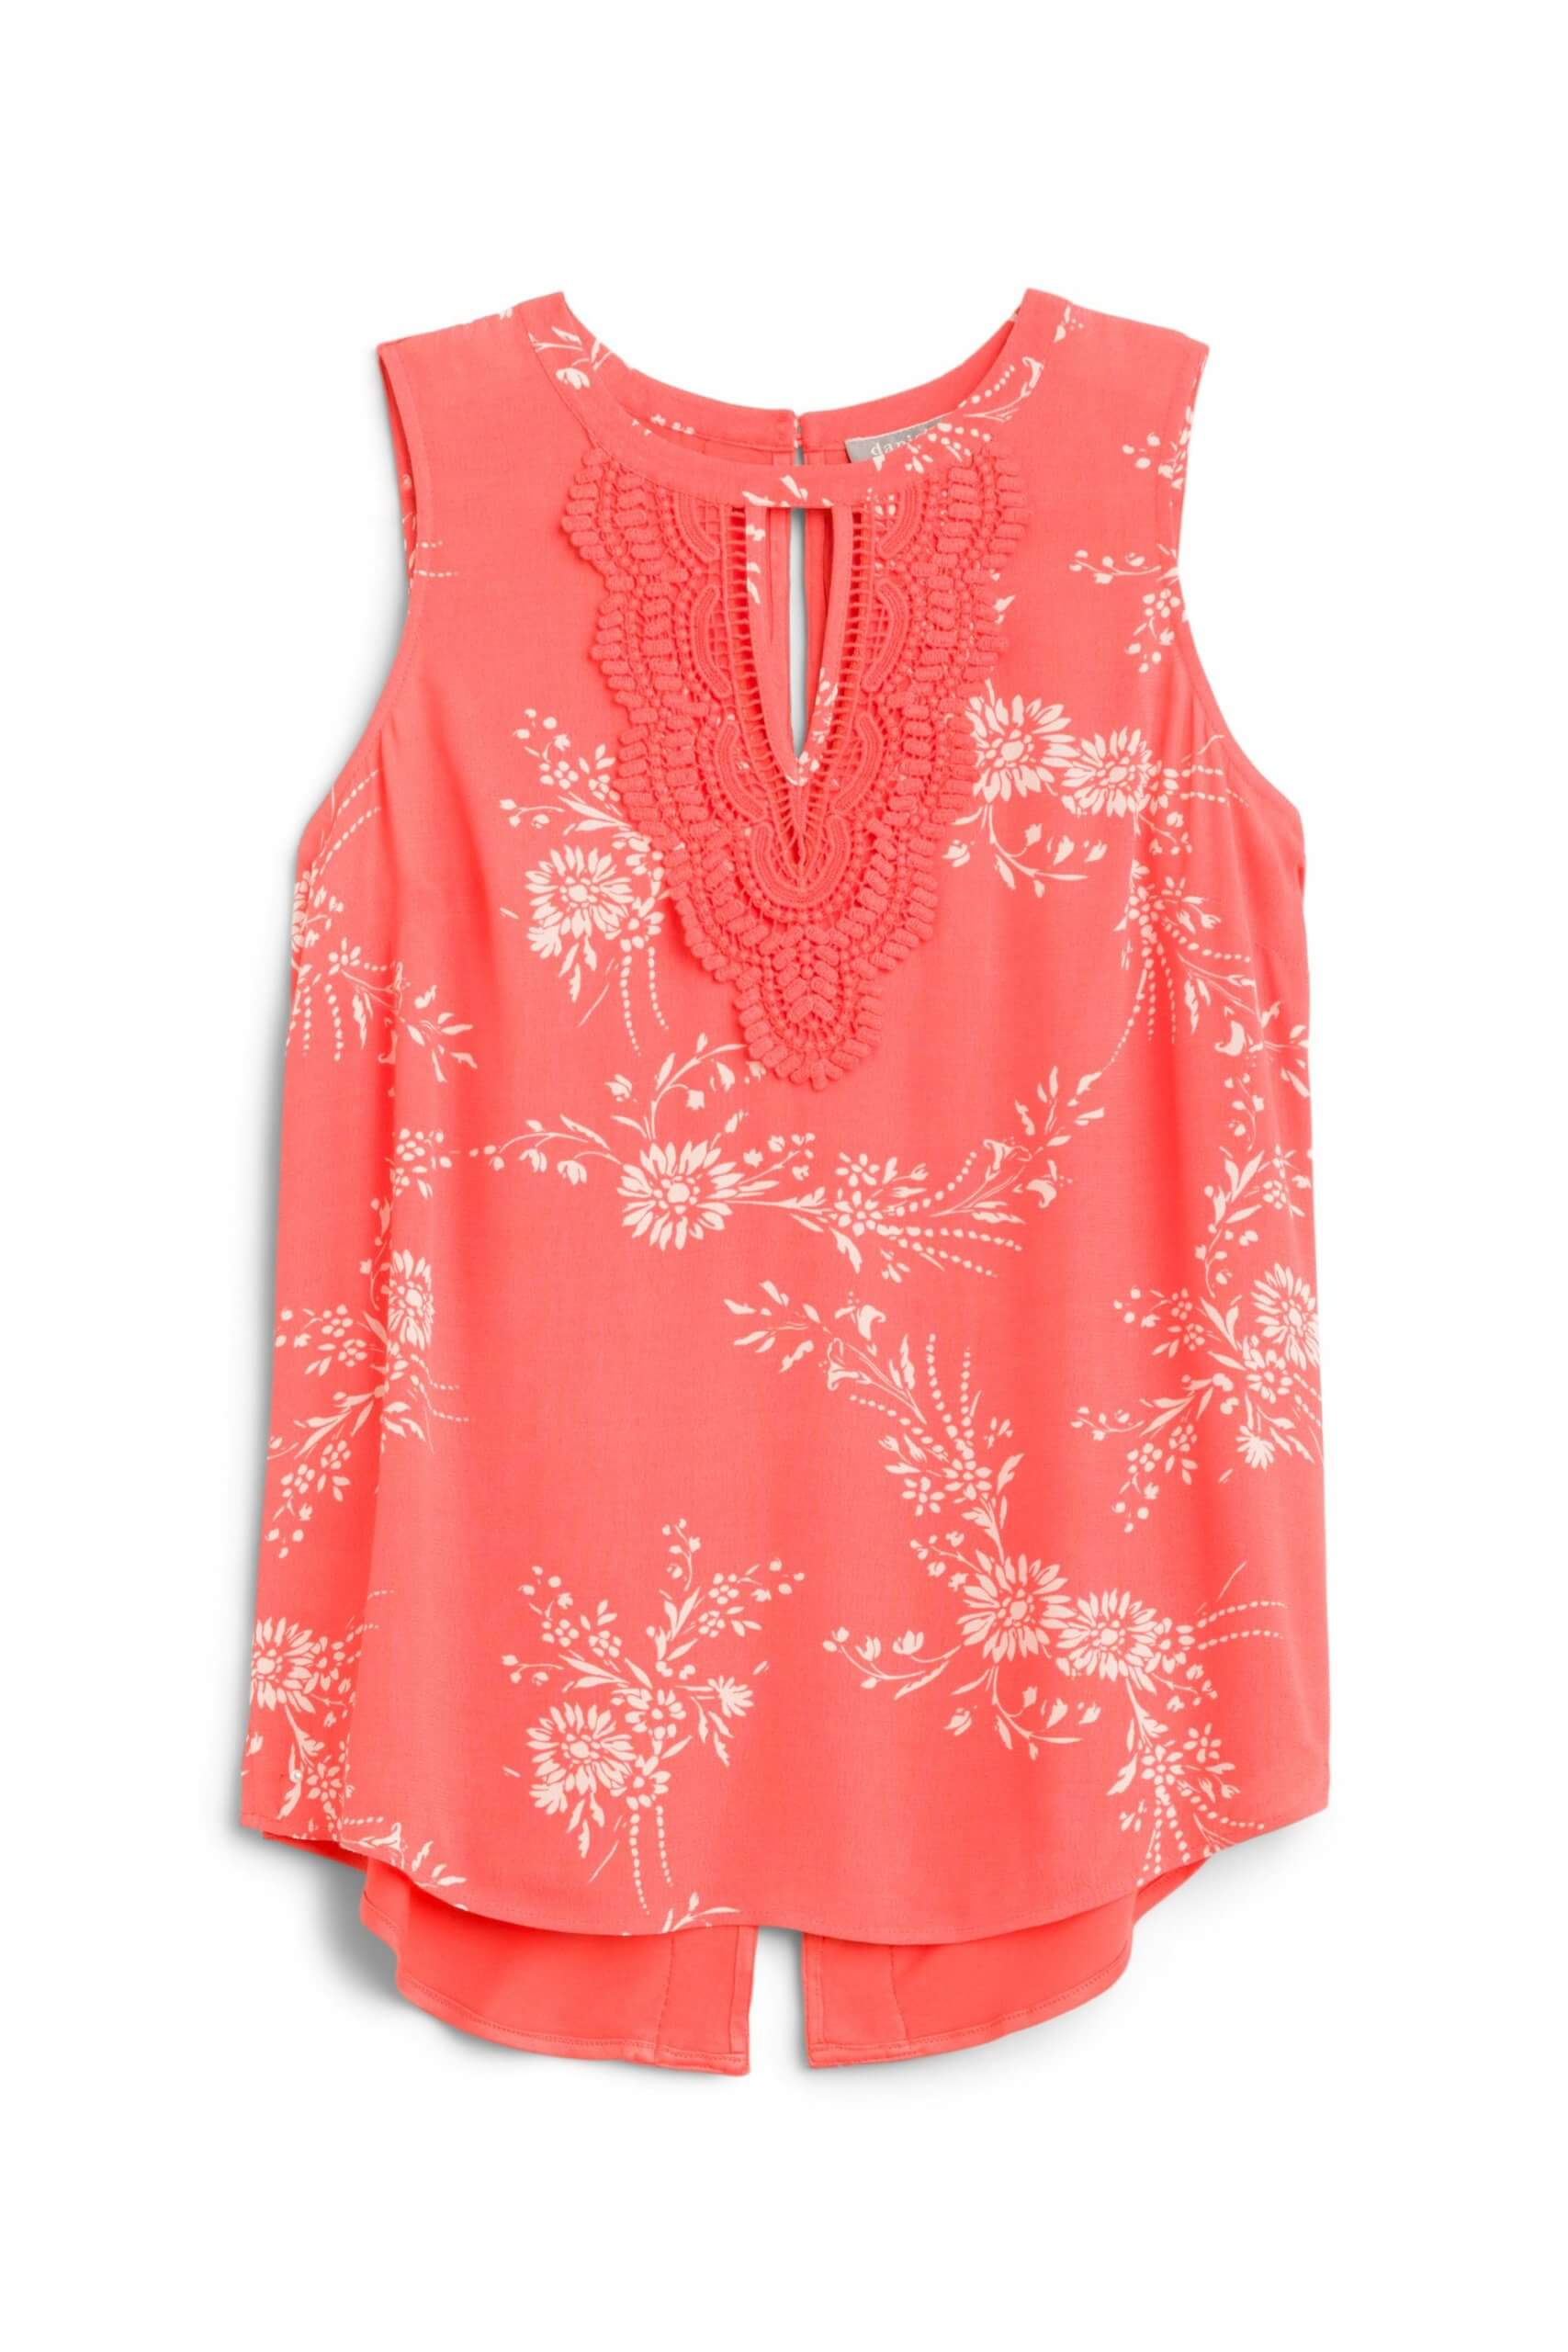 Stitch Fix Women's sleeveless coral floral print blouse with keyhole.